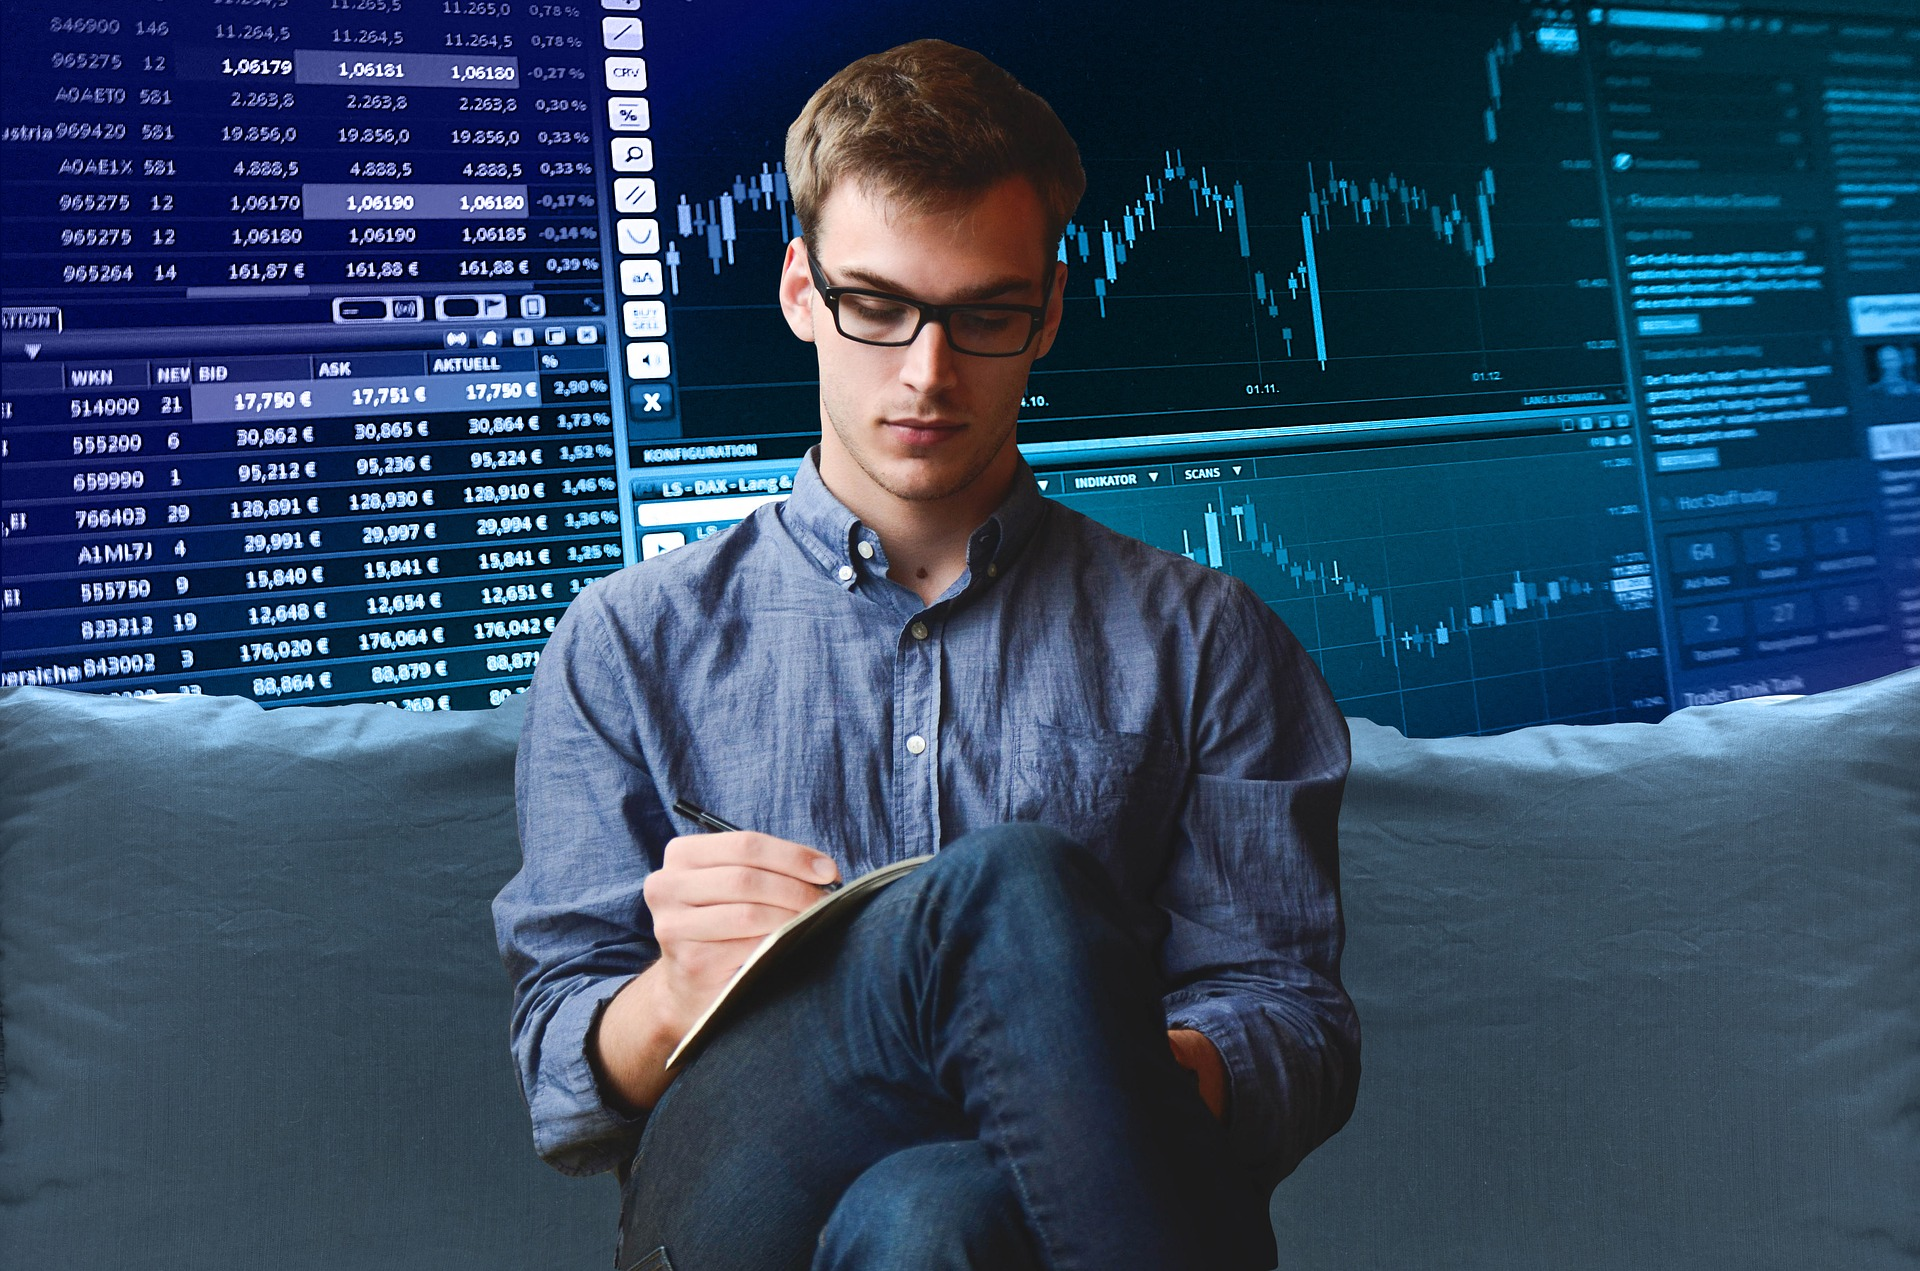 Some Processes To Follow Before Trading Online